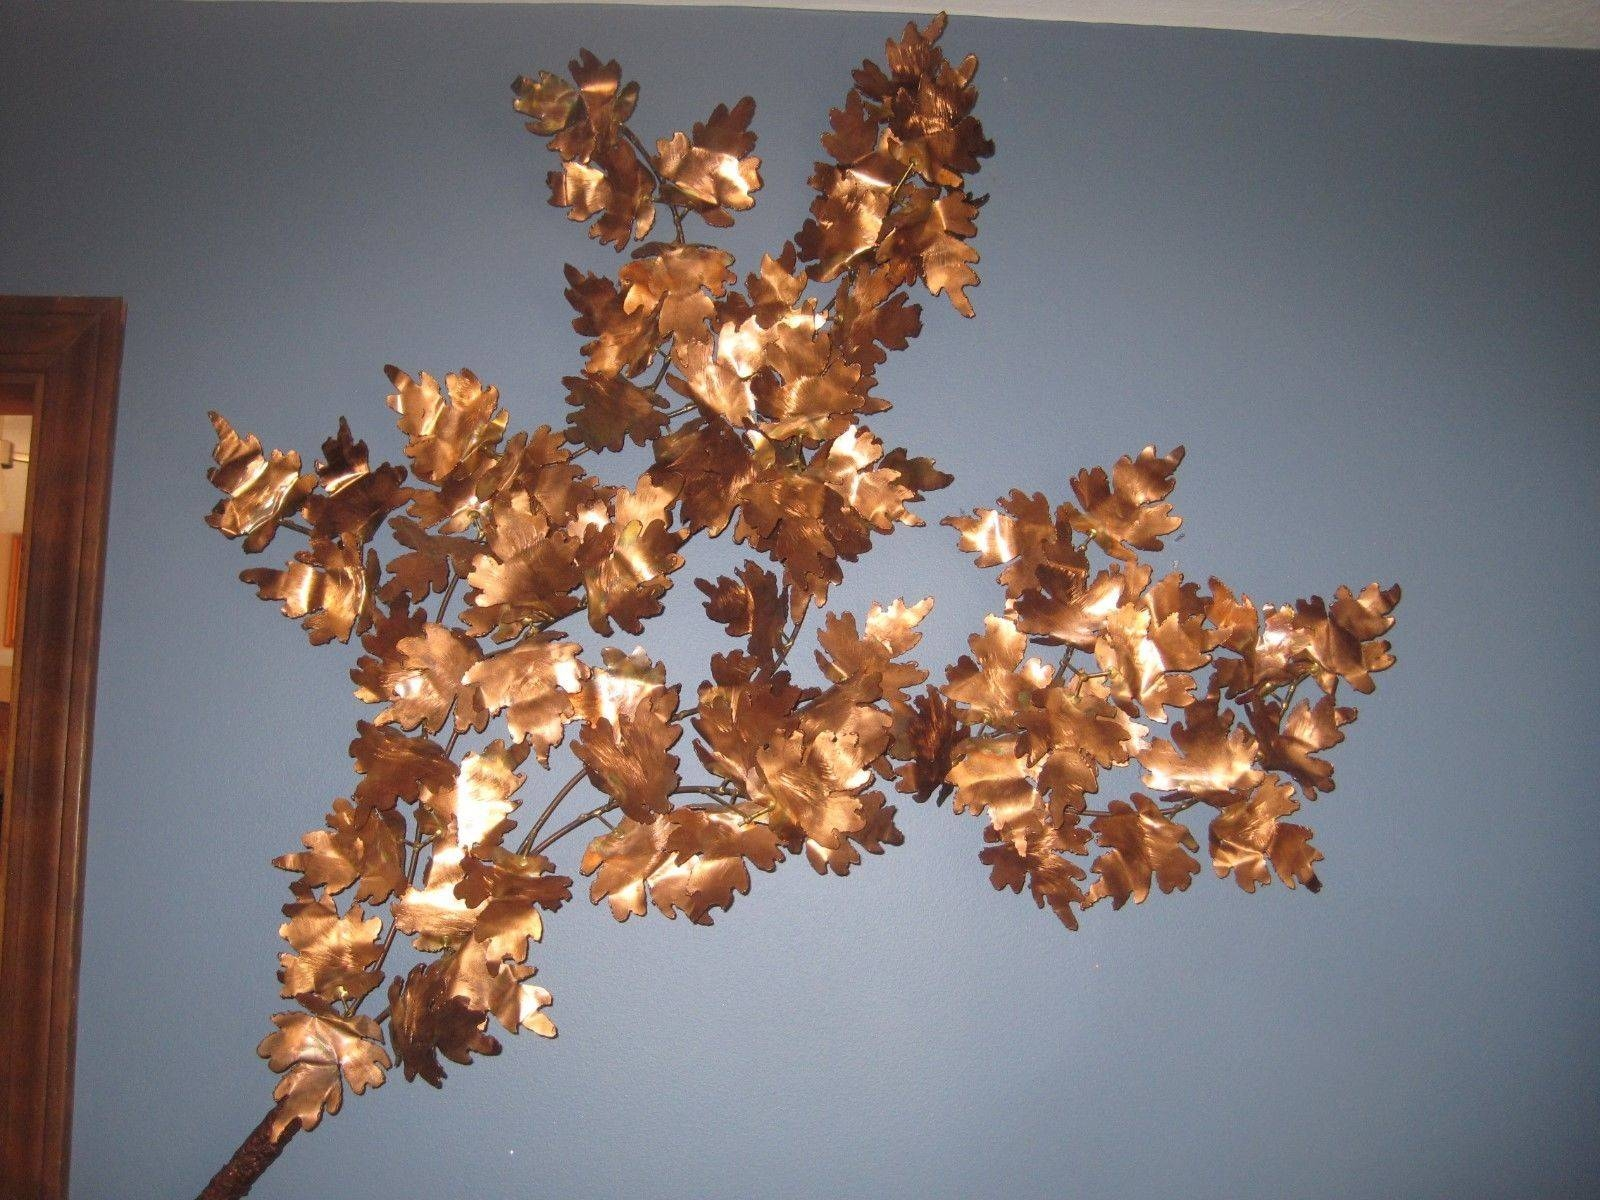 45 Solid Copper Metal Branch Maple Leaves 3D Wall Art Sculpture Inside 2017 3D Metal Wall Art Sculptures (Gallery 15 of 20)